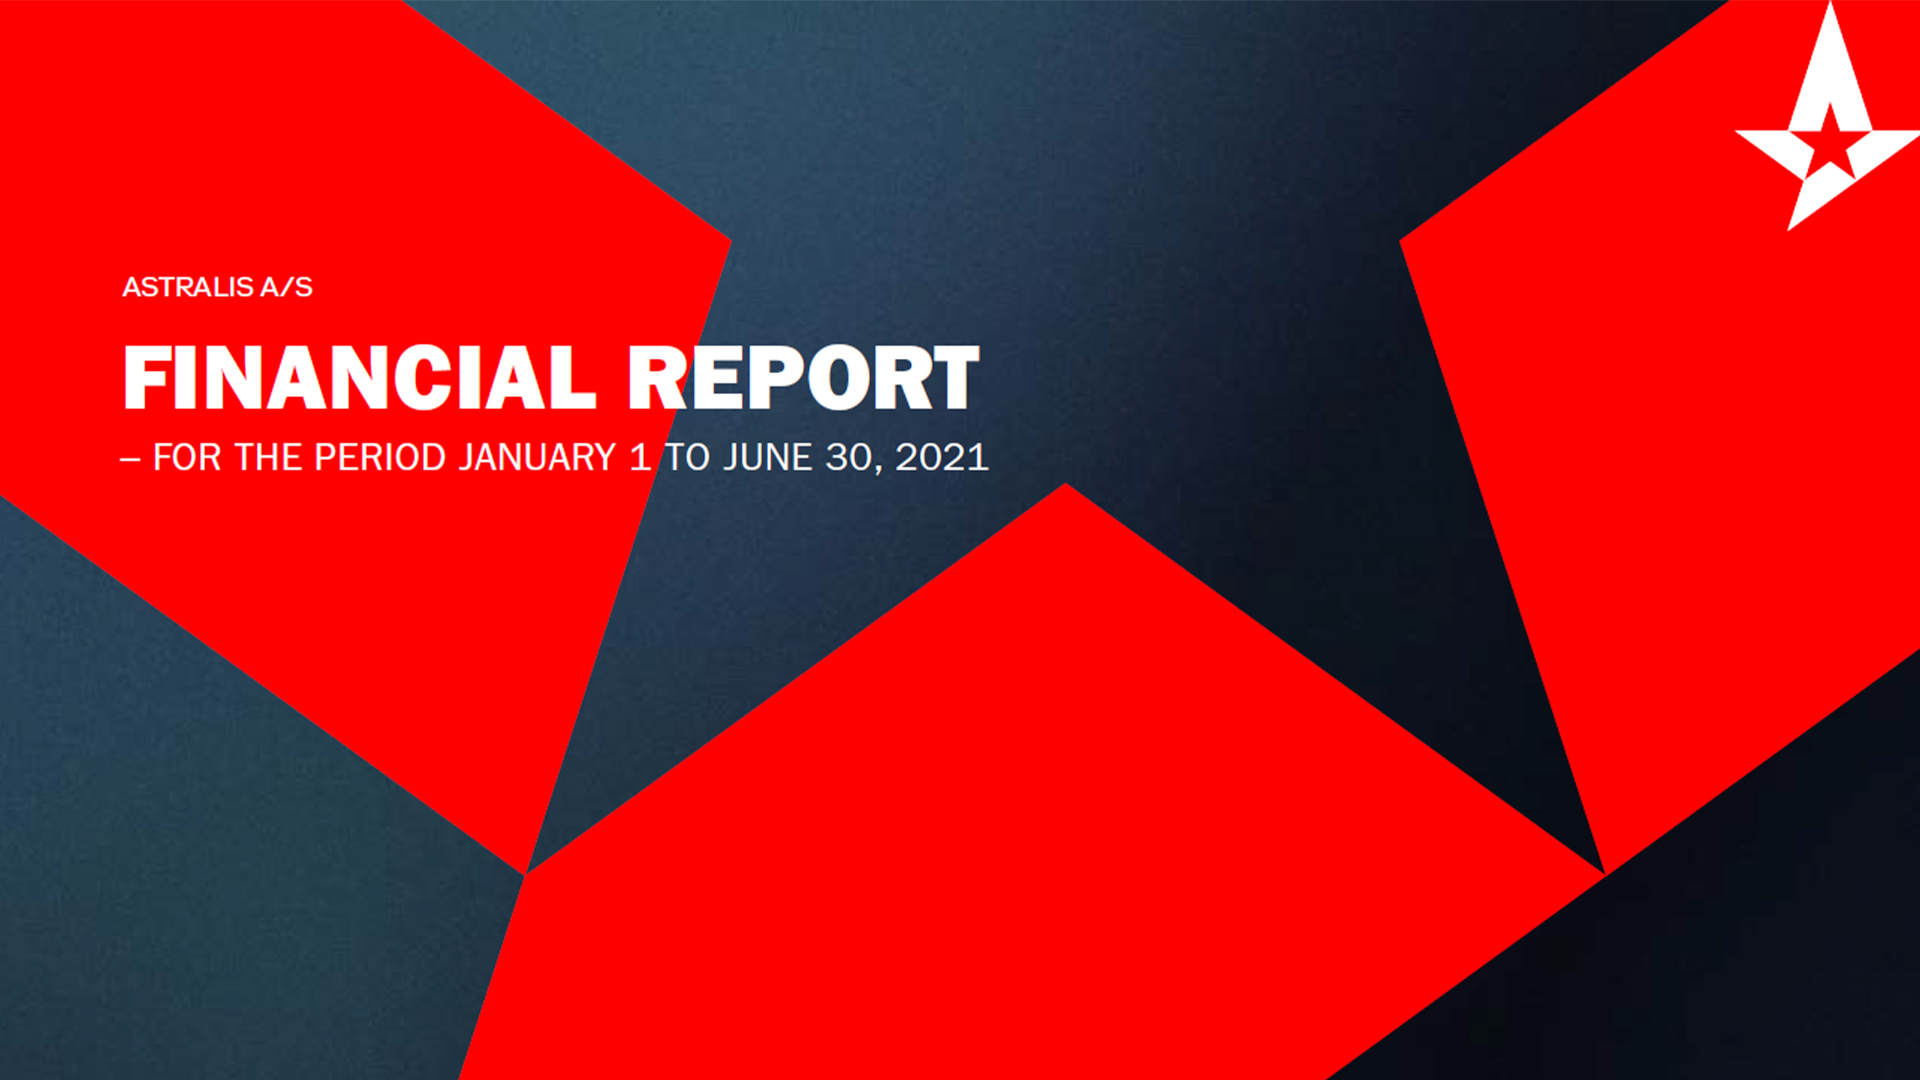 Astralis Group H1 2021 Financial Report